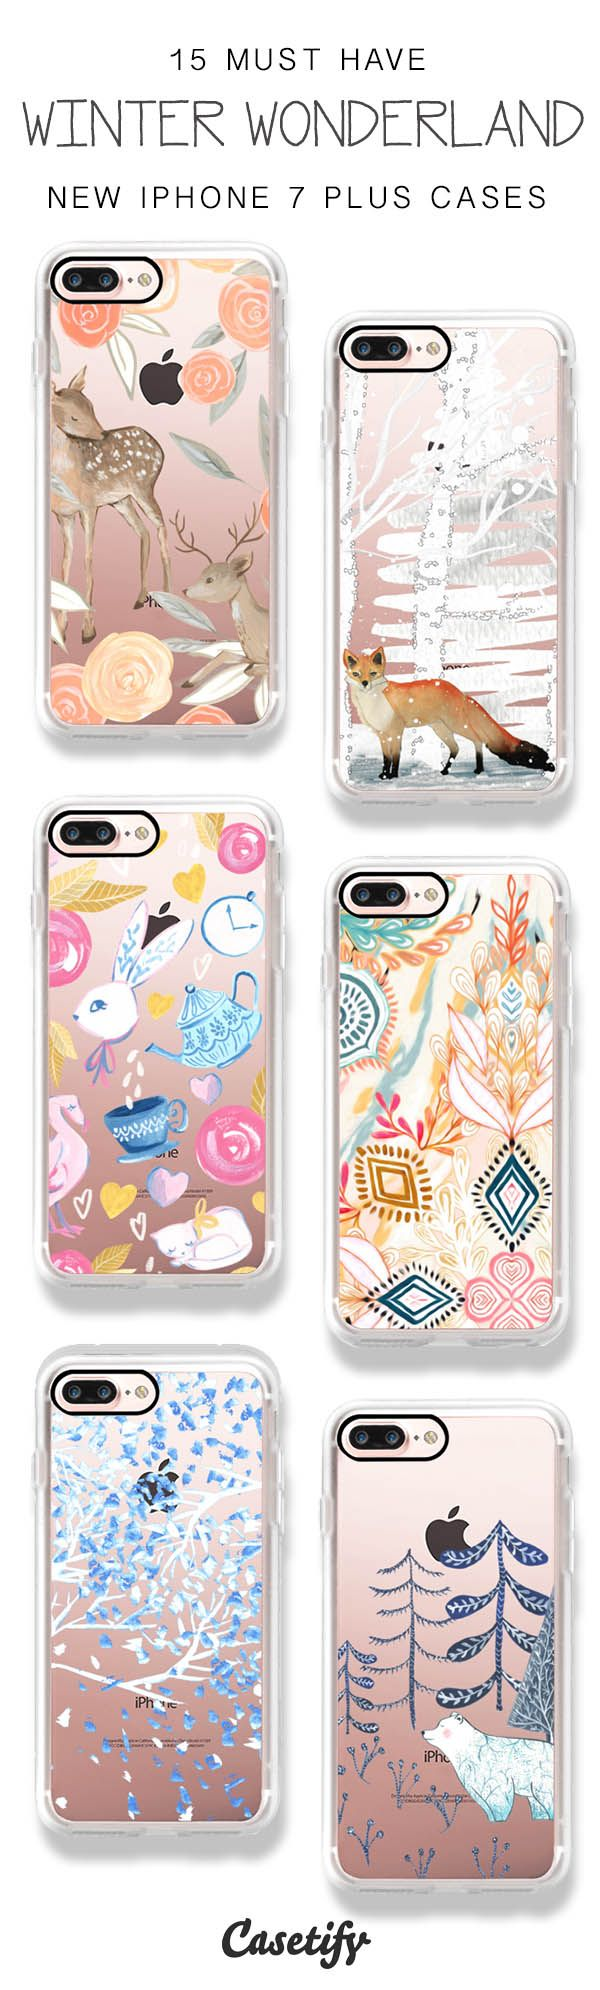 Walking in the Winter Wonderland! 15 Must Have iPhone 7 / iPhone 7 Plus Phone Cases here > https://www.casetify.com/artworks/JWUcNUdezF